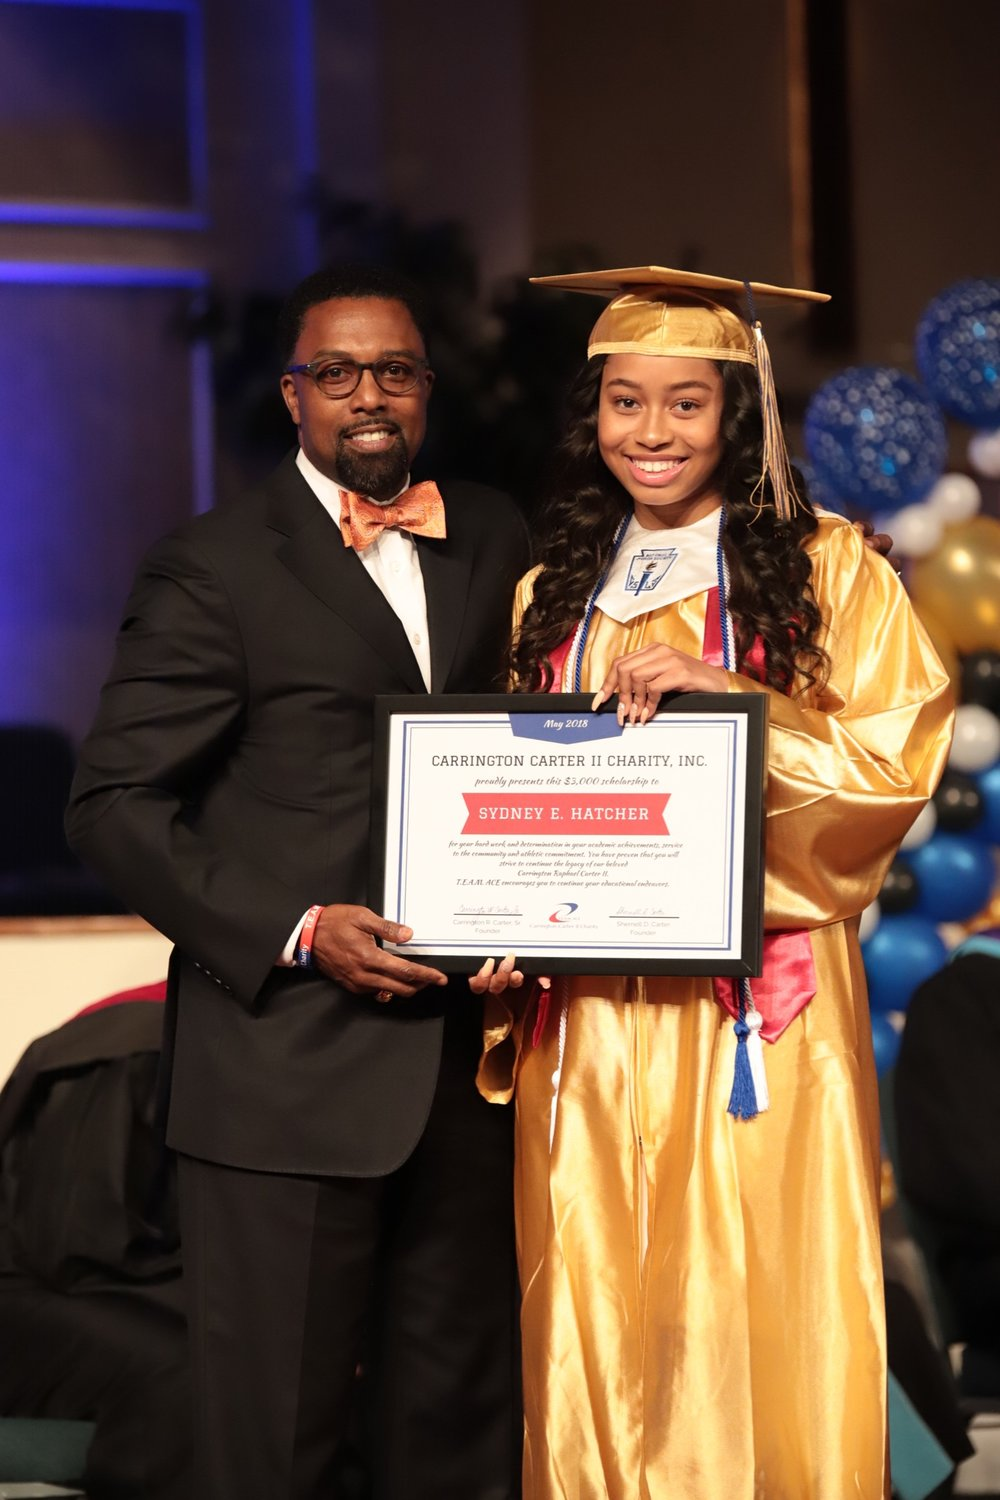 Ms. Sydney Hatcher  Ms. Sydney Hatcher earned a 4.1/5.0 GPA and participated in Girls Varsity Soccer for 4 years.